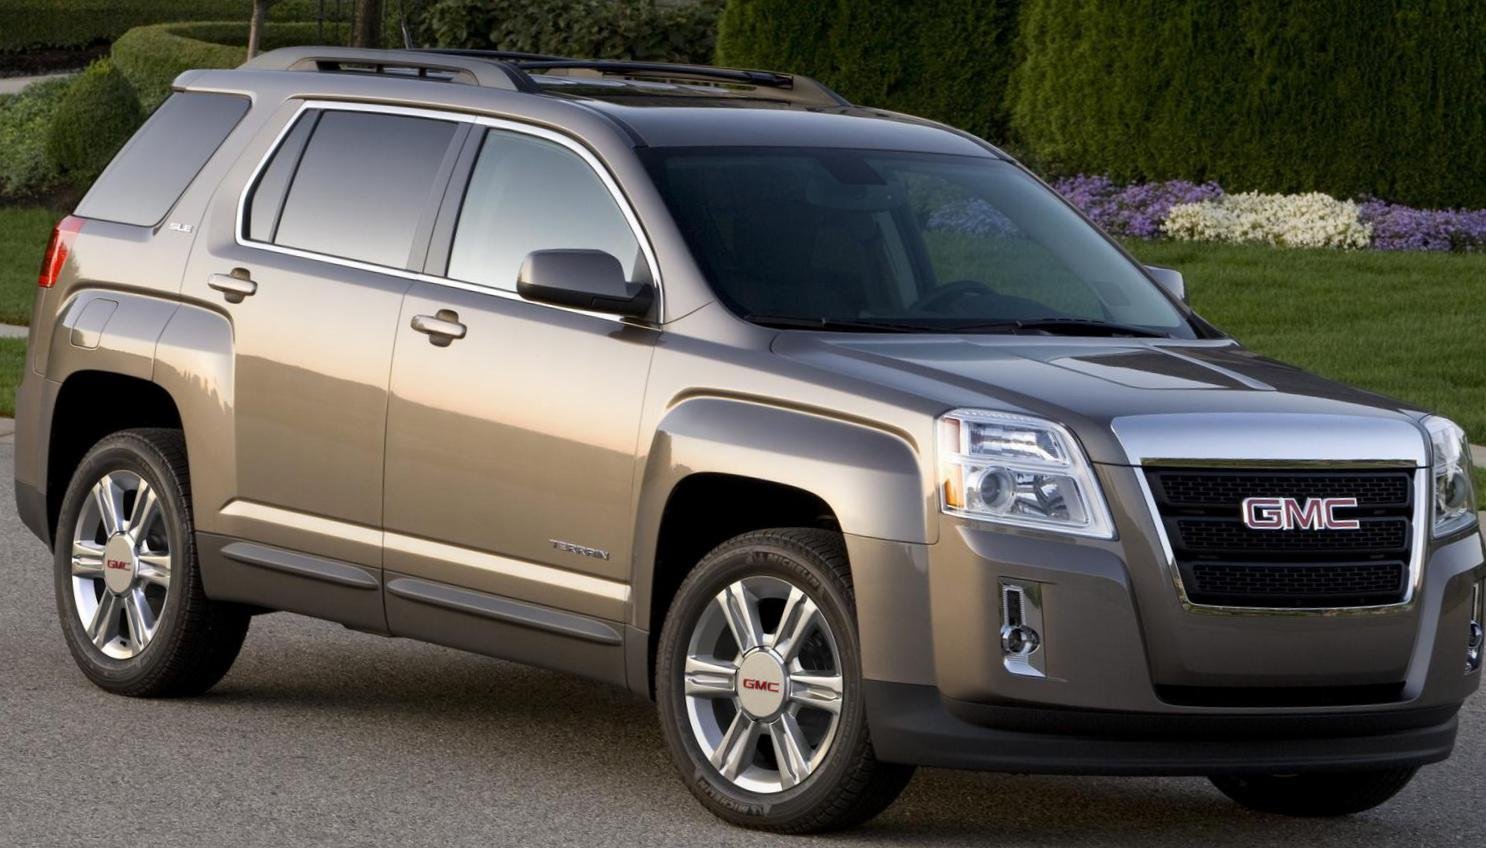 selection for image showing an have and your gmc images terrain we don com slt dp vehicles specs reviews amazon t